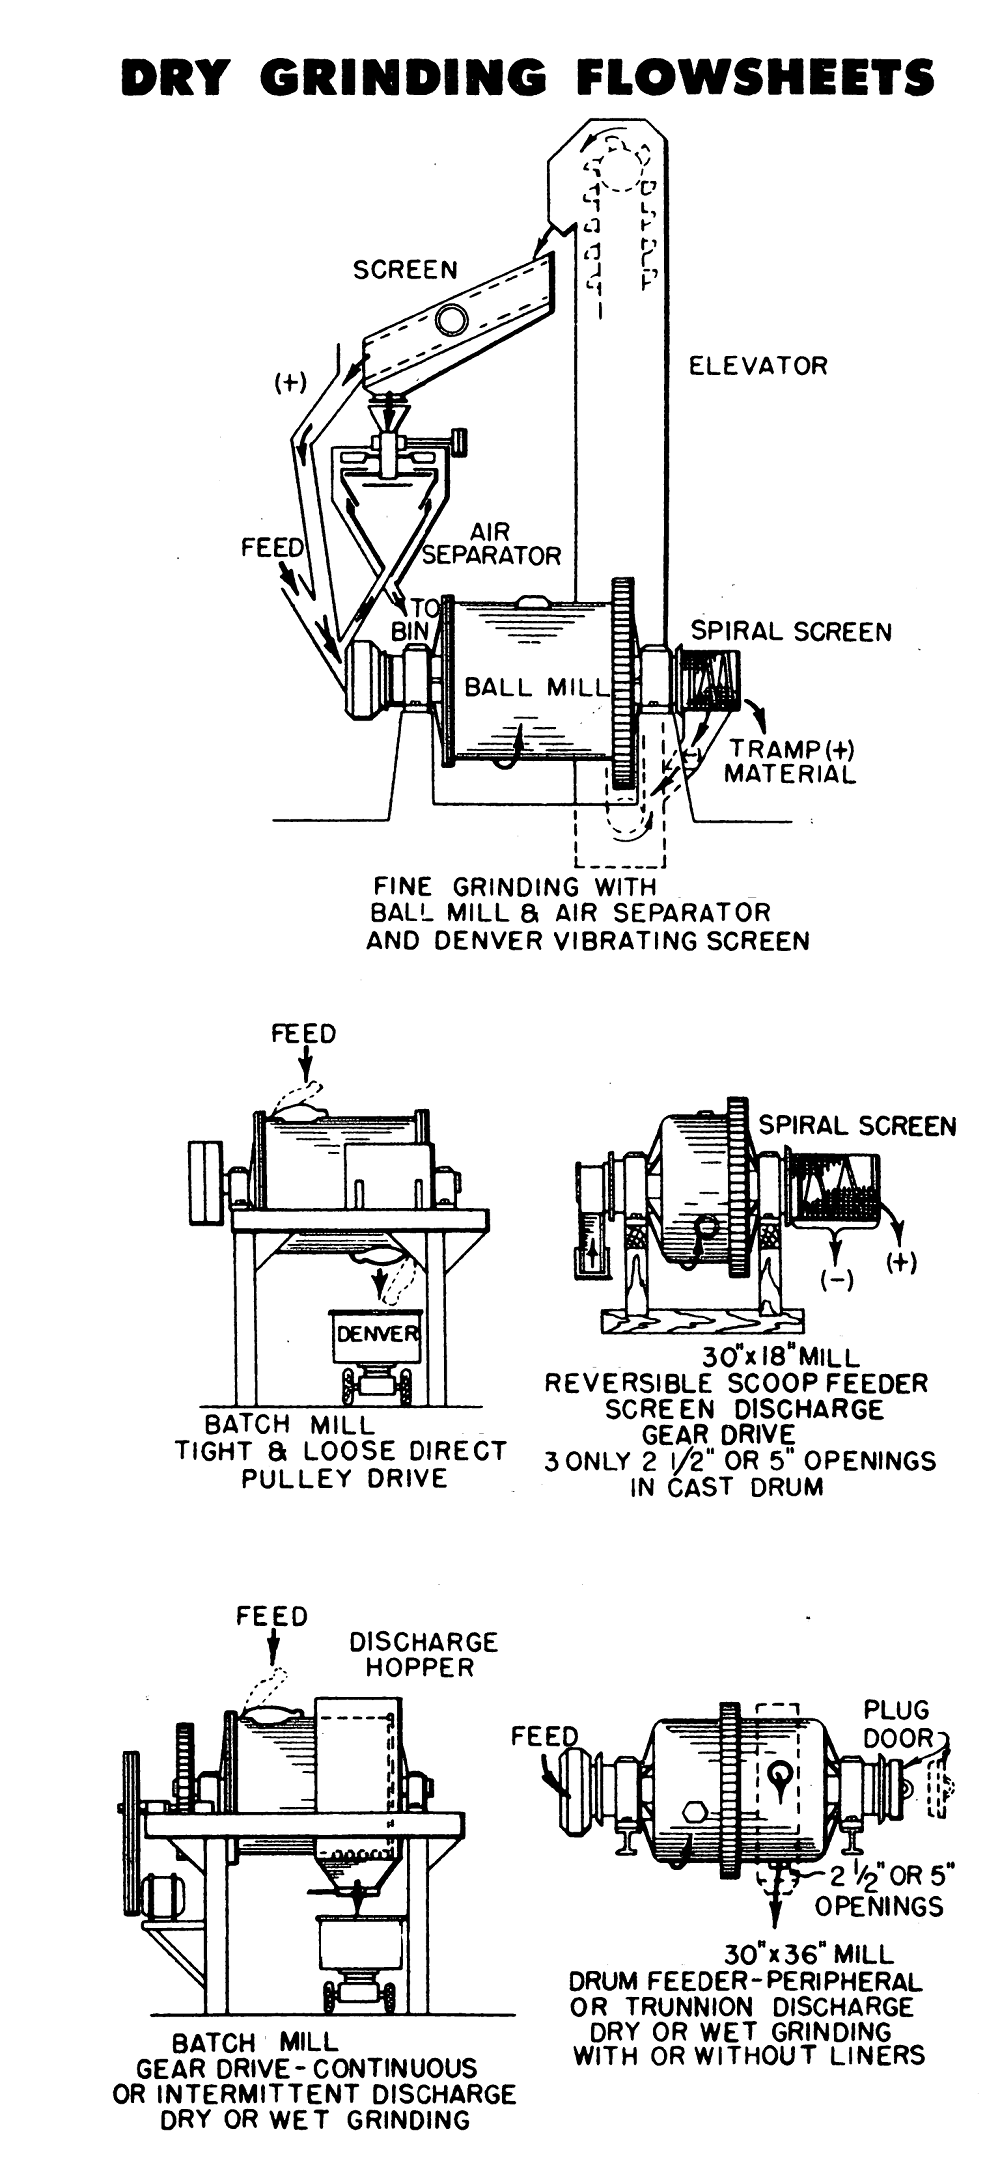 dry grinding equipment